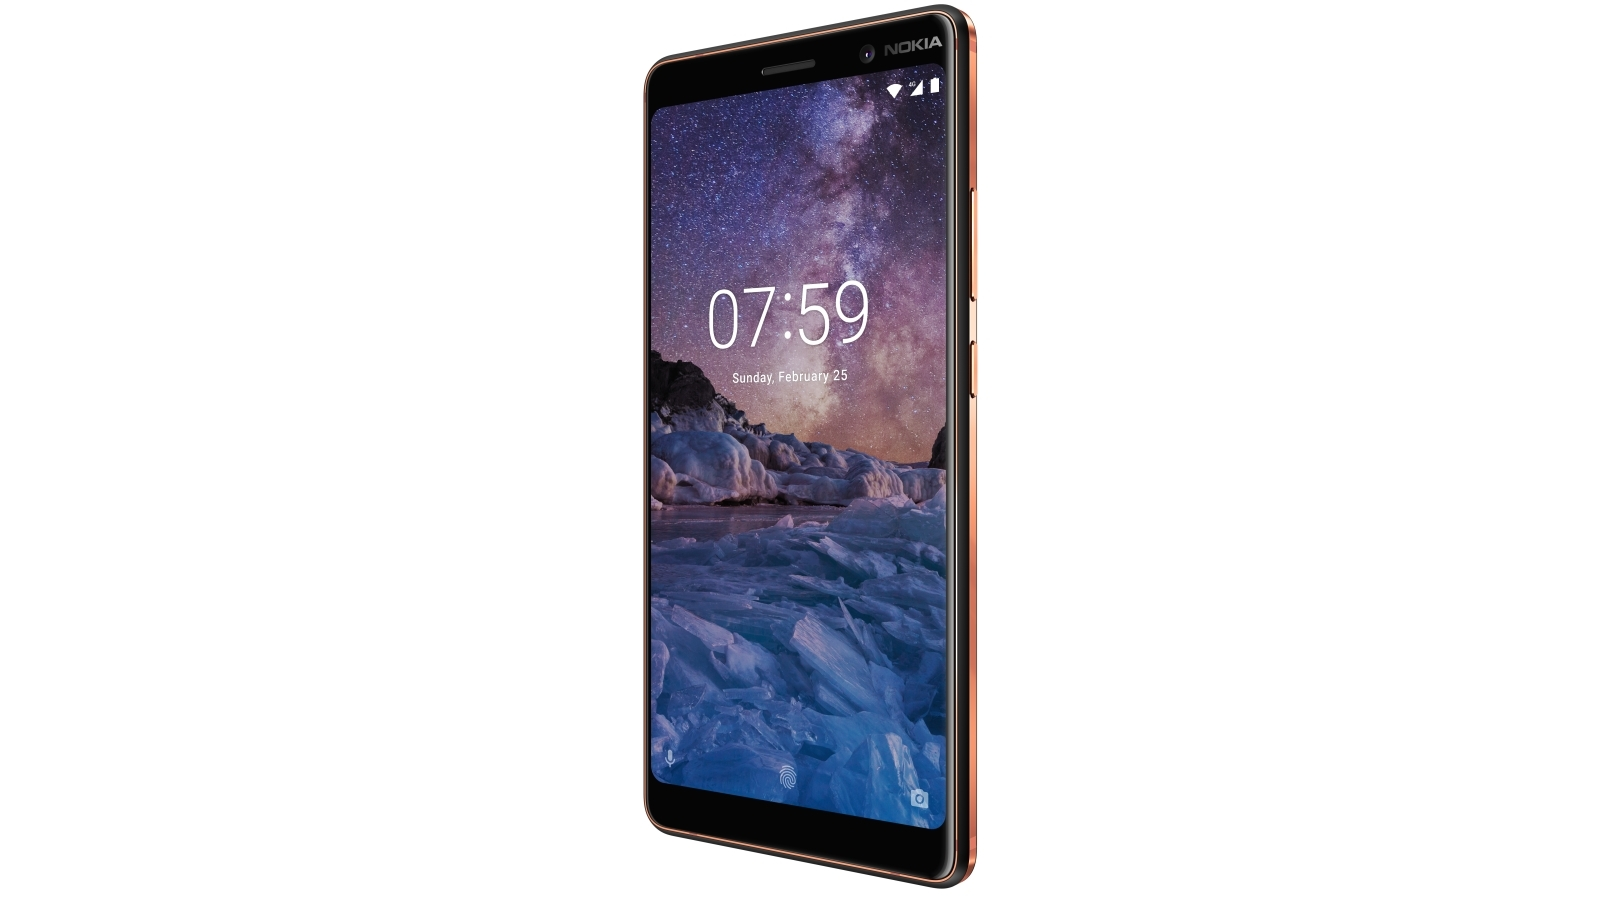 Cheap Nokia 7 Plus with Android One - Black Copper | Harvey Norman AU